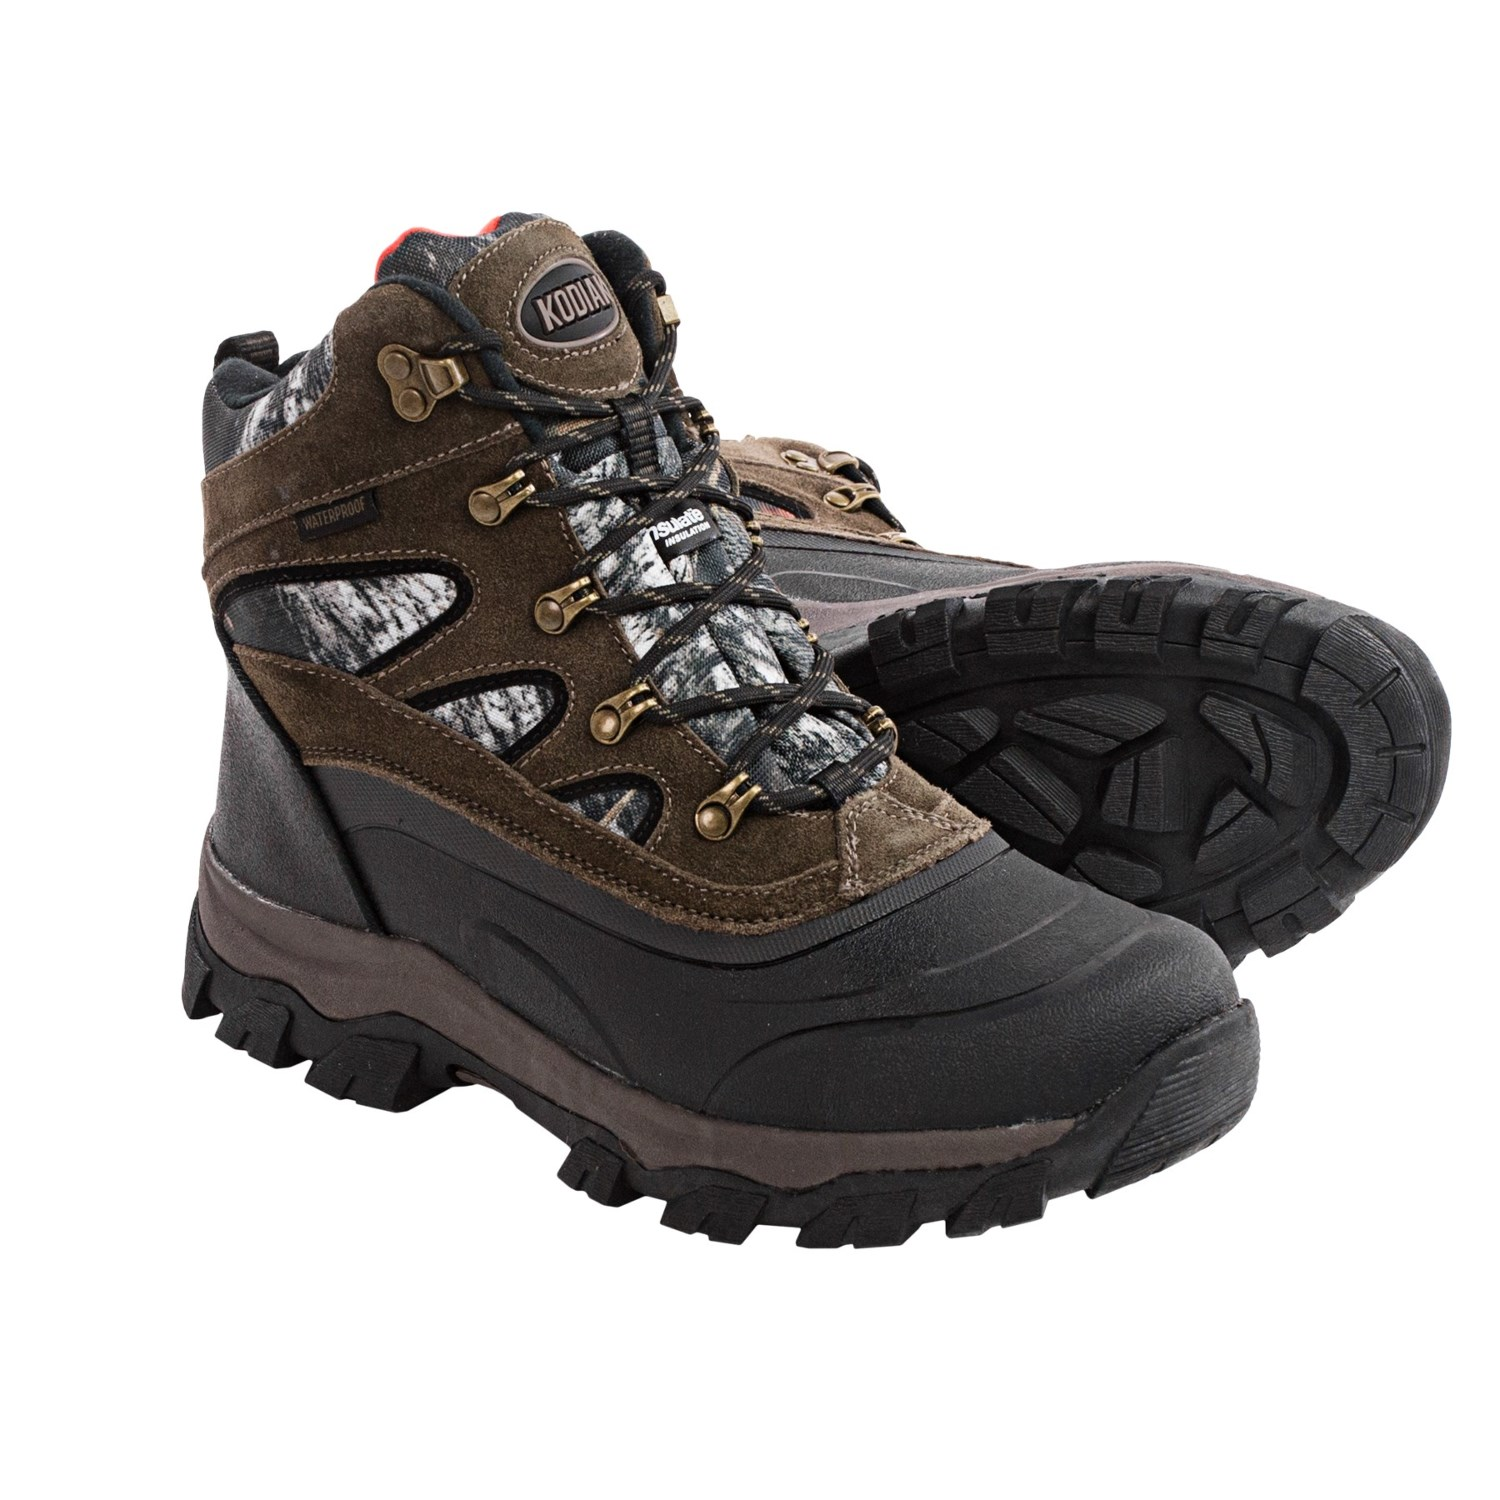 Merrell Kiandra Snow Boots (For Men) - Save 73%